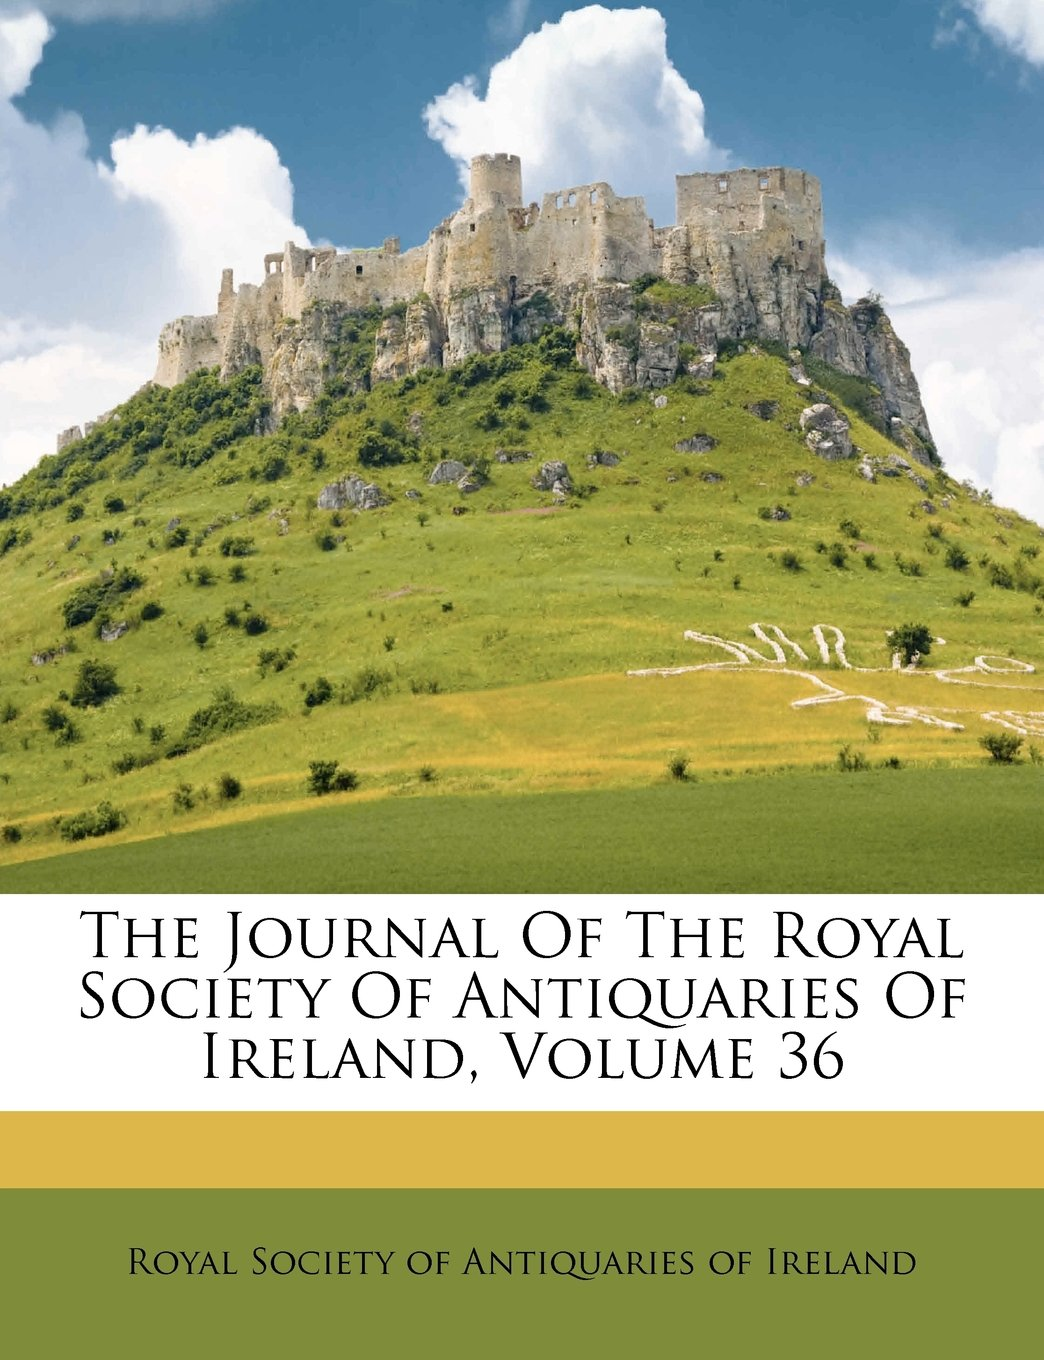 The Journal Of The Royal Society Of Antiquaries Of Ireland, Volume 36 pdf